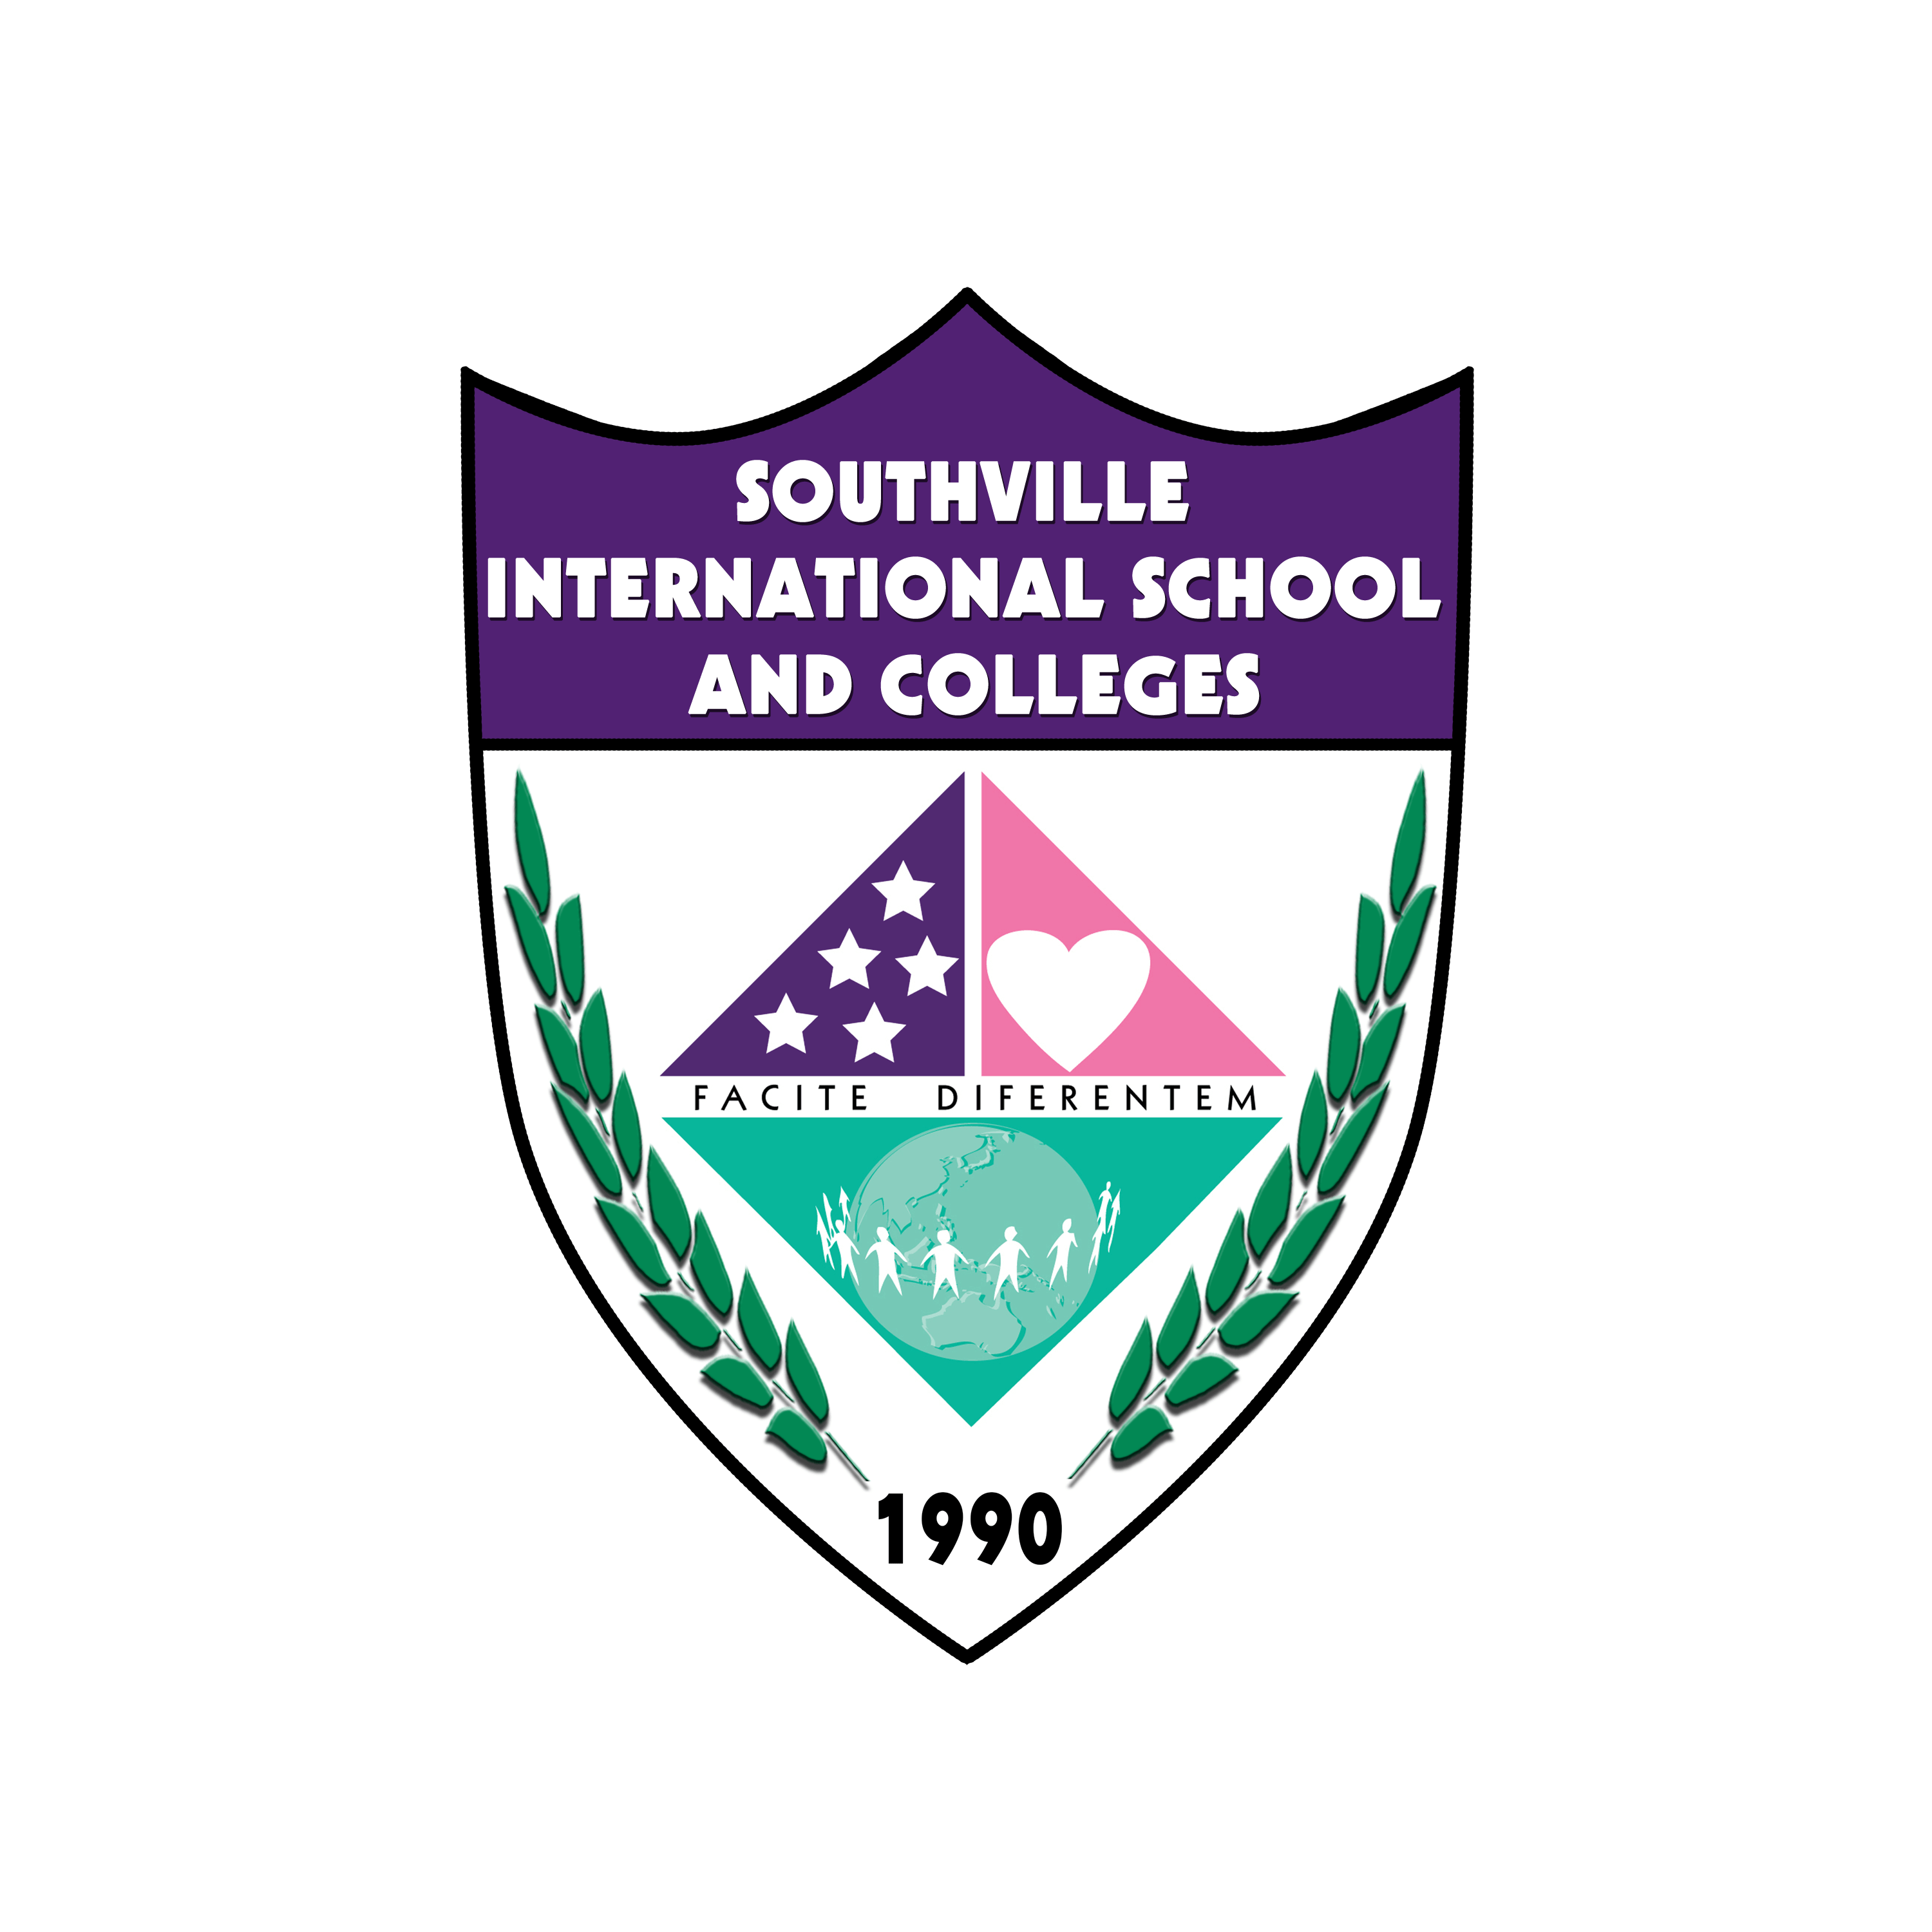 Southville International School and Colleges Logo